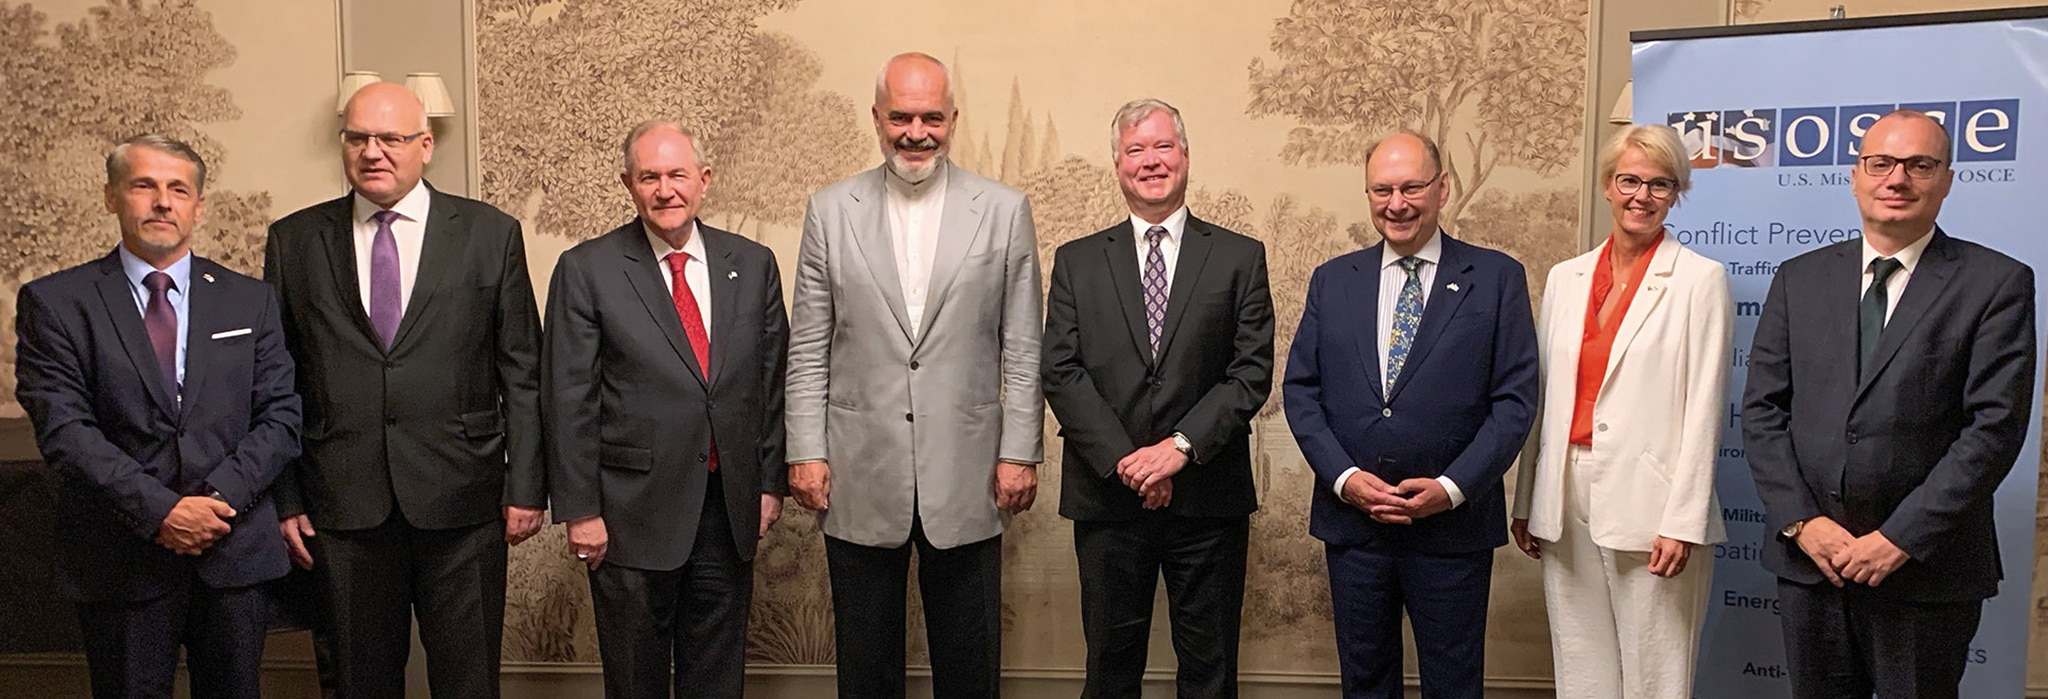 Photo showing Deputy Secretary of State Stephen E. Biegun meeting with OSCE Troika, including the current, past, and future Chairperson-in-Office of the Organization for Security and Co-operation in Europe (OSCE), in Vienna, Austria, August 27, 2020. [Department of State]